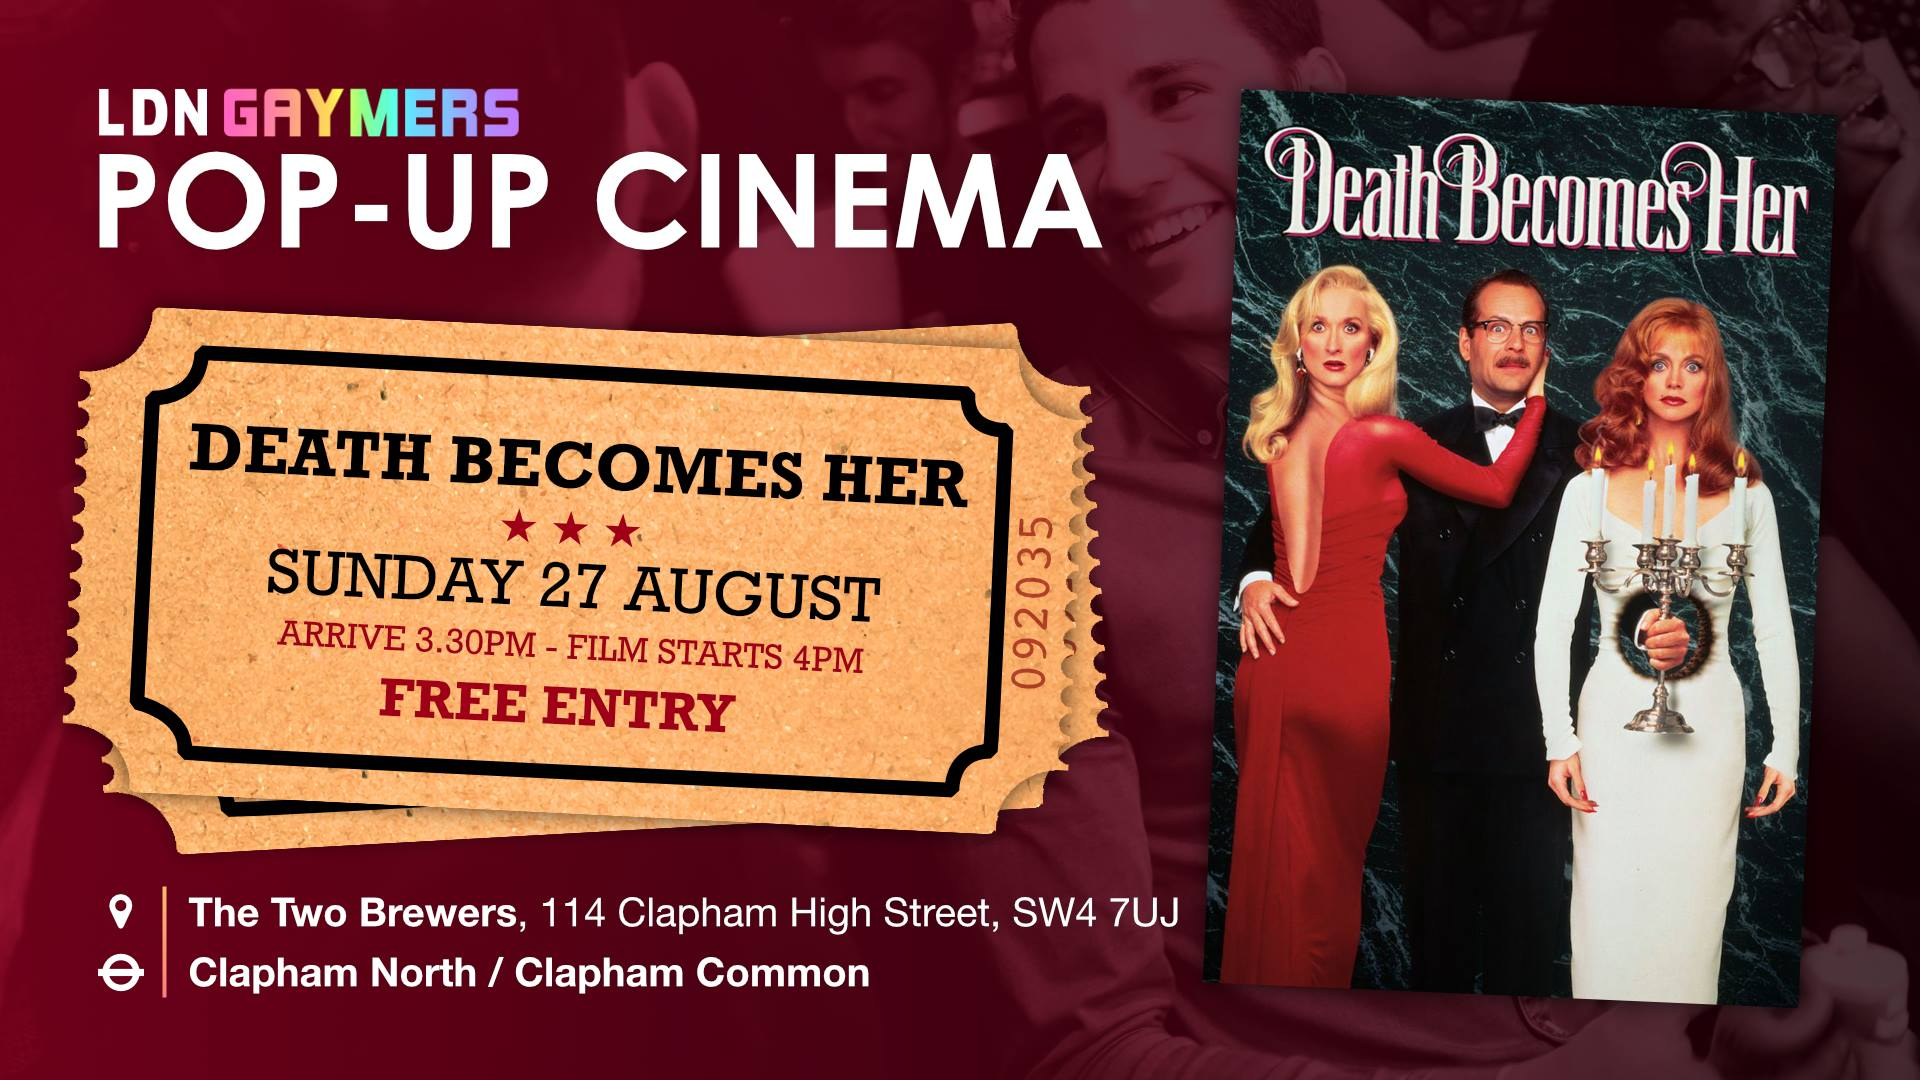 LDN Gaymers: Pop-Up Cinema - Death Becomes Her